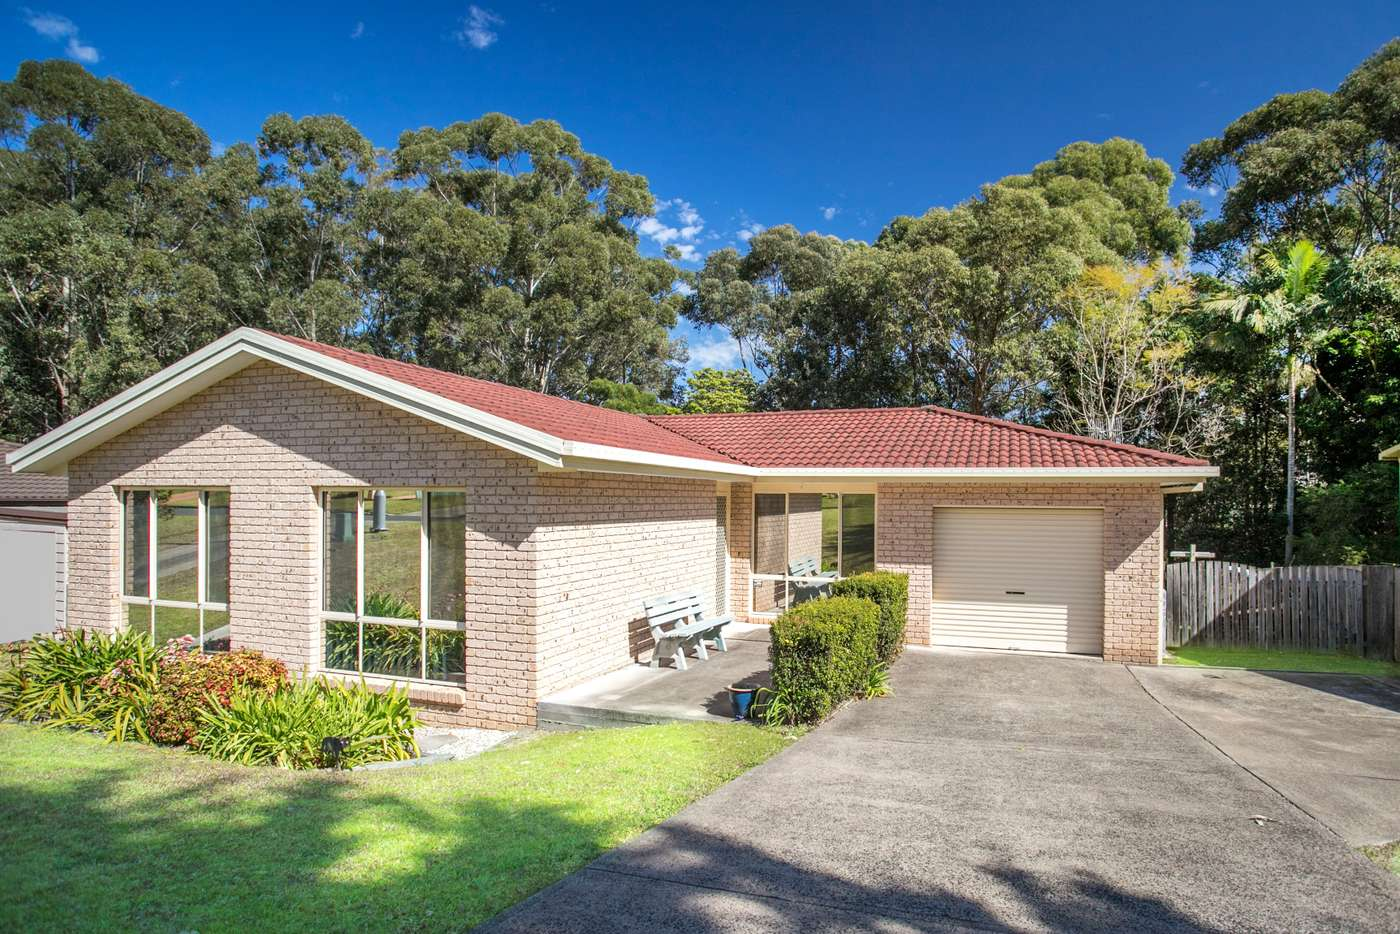 Main view of Homely house listing, 49 Timbs Street, Ulladulla NSW 2539